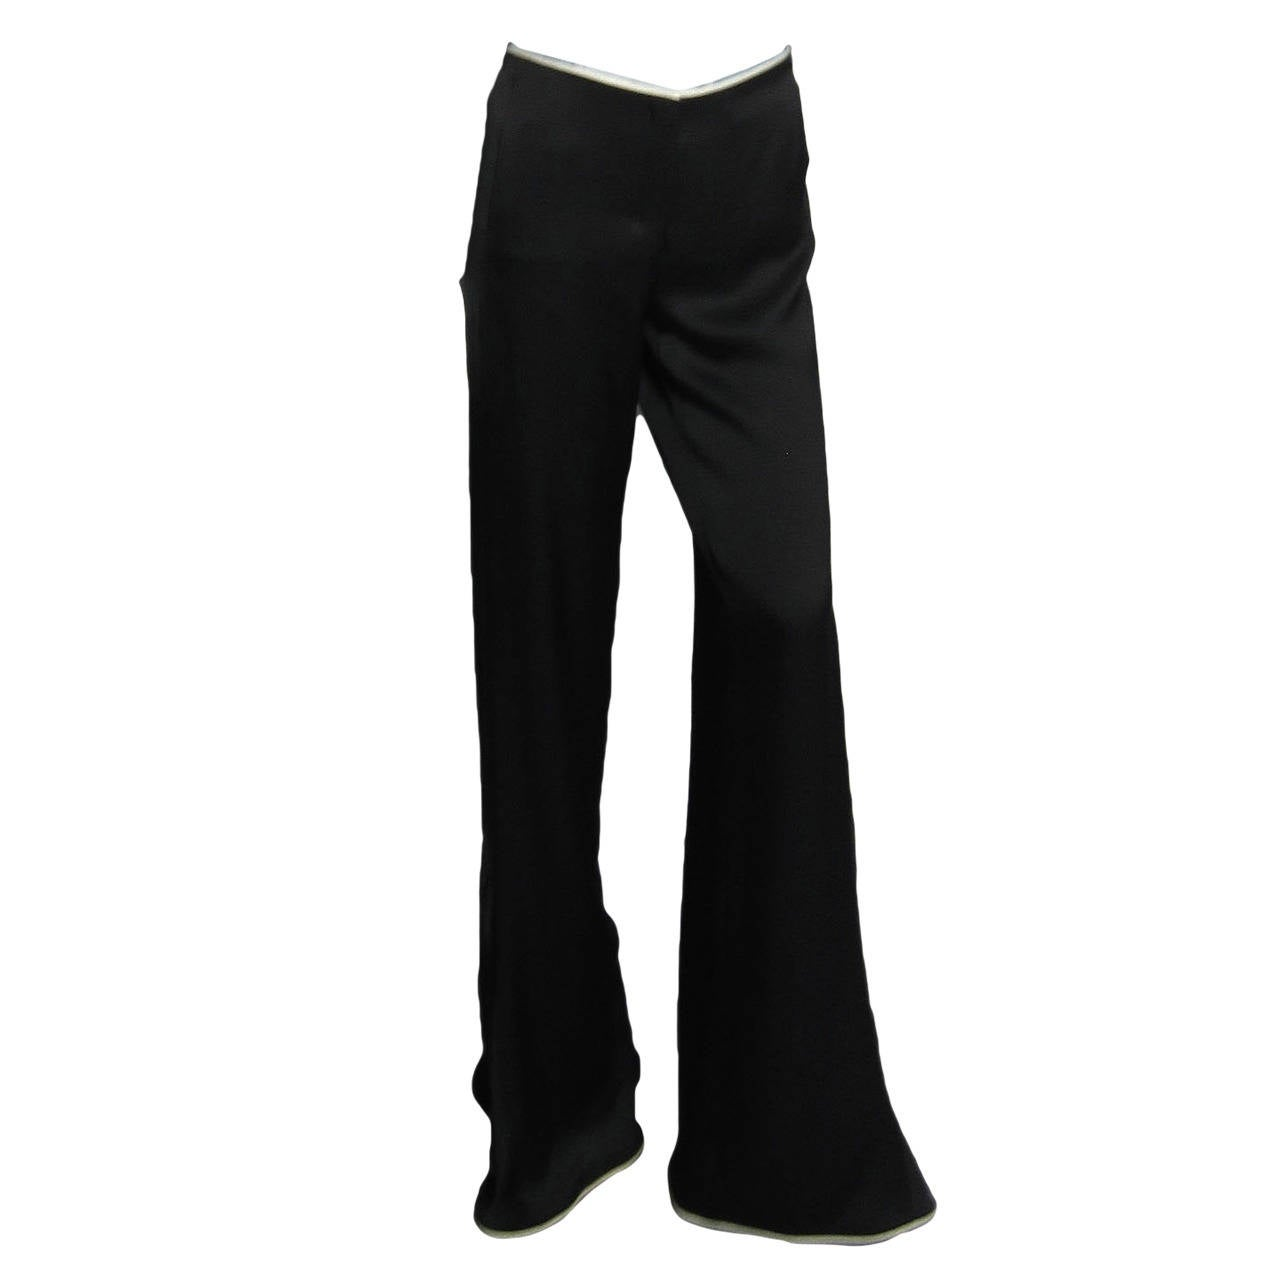 Coco chanel bell bottoms